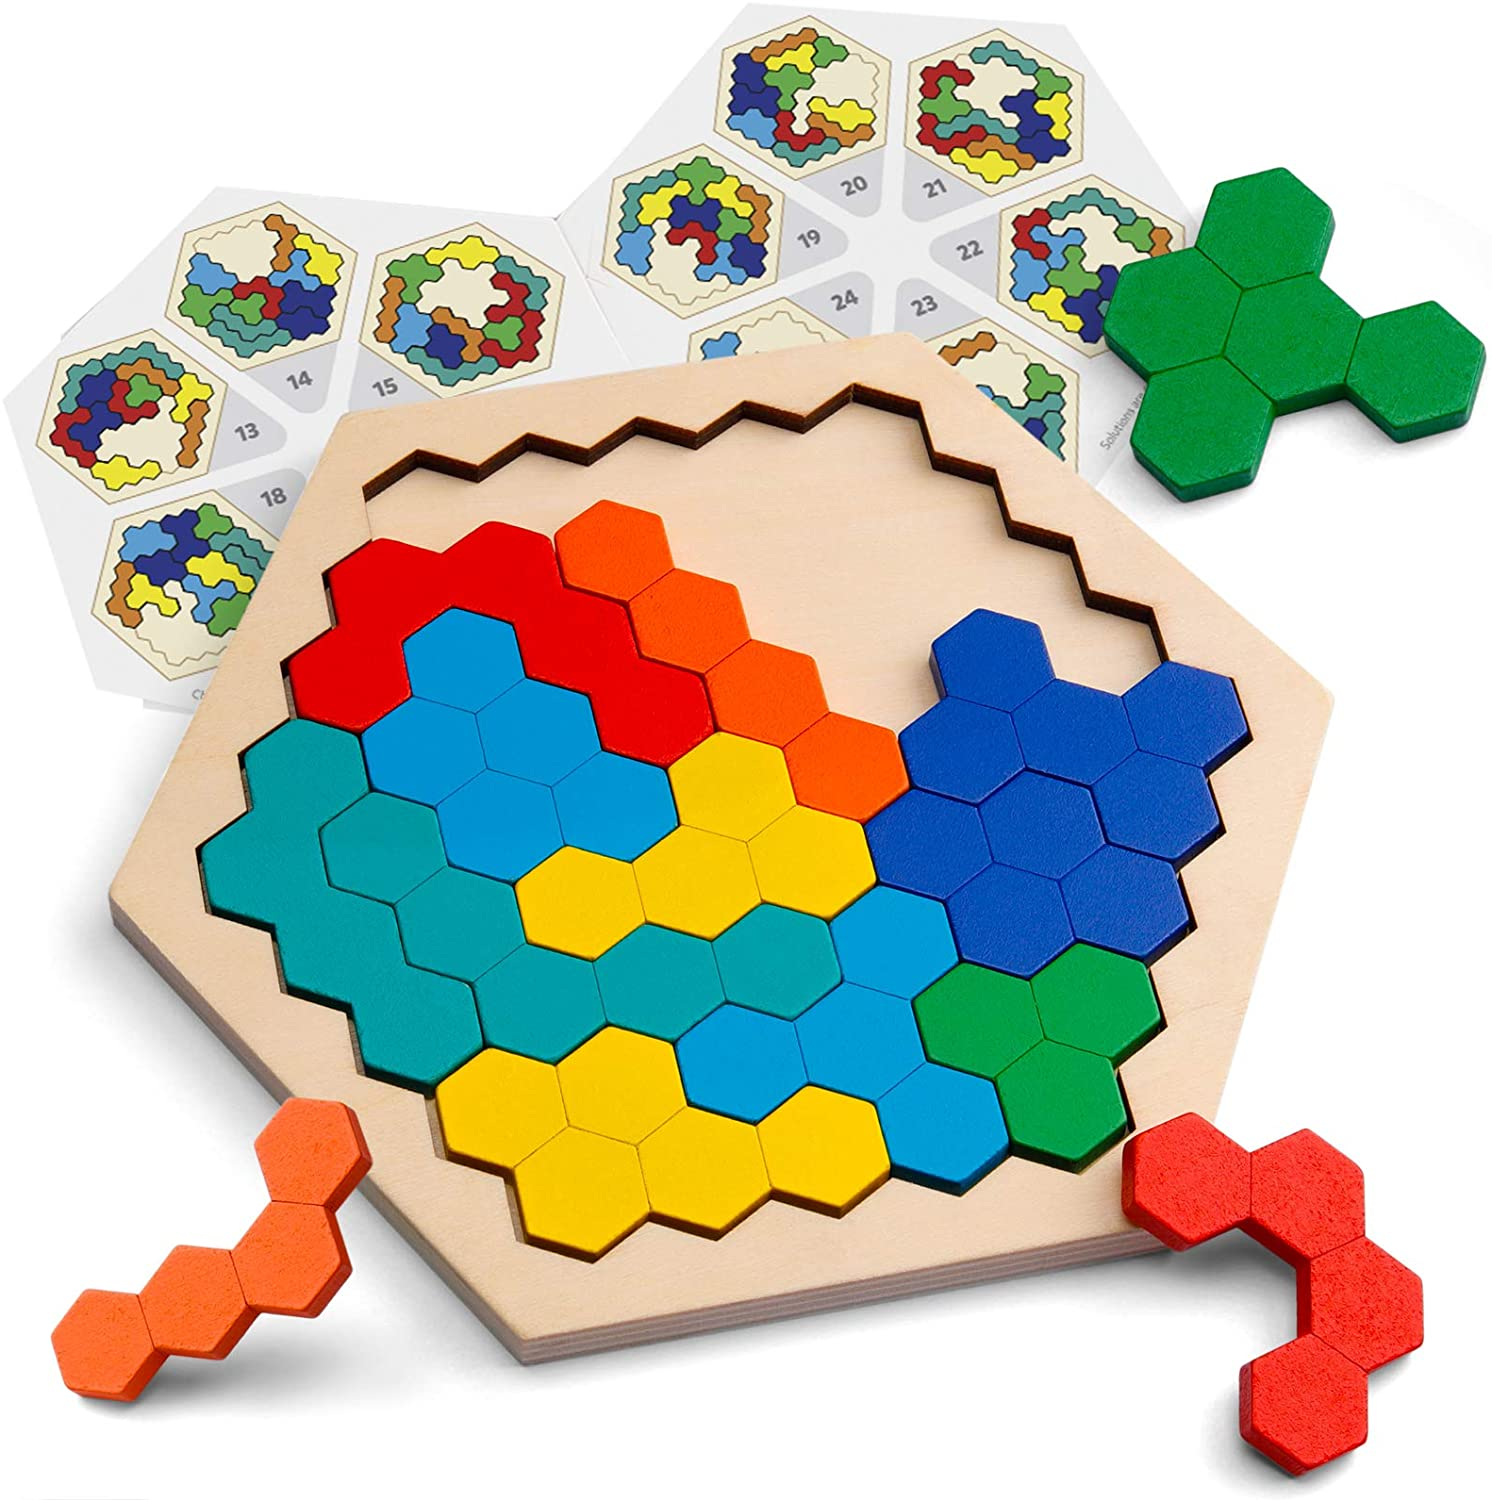 3D Chinese Wooden Puzzle Game Chexagon Model Brain Teaser Jigsaw Building Blocks